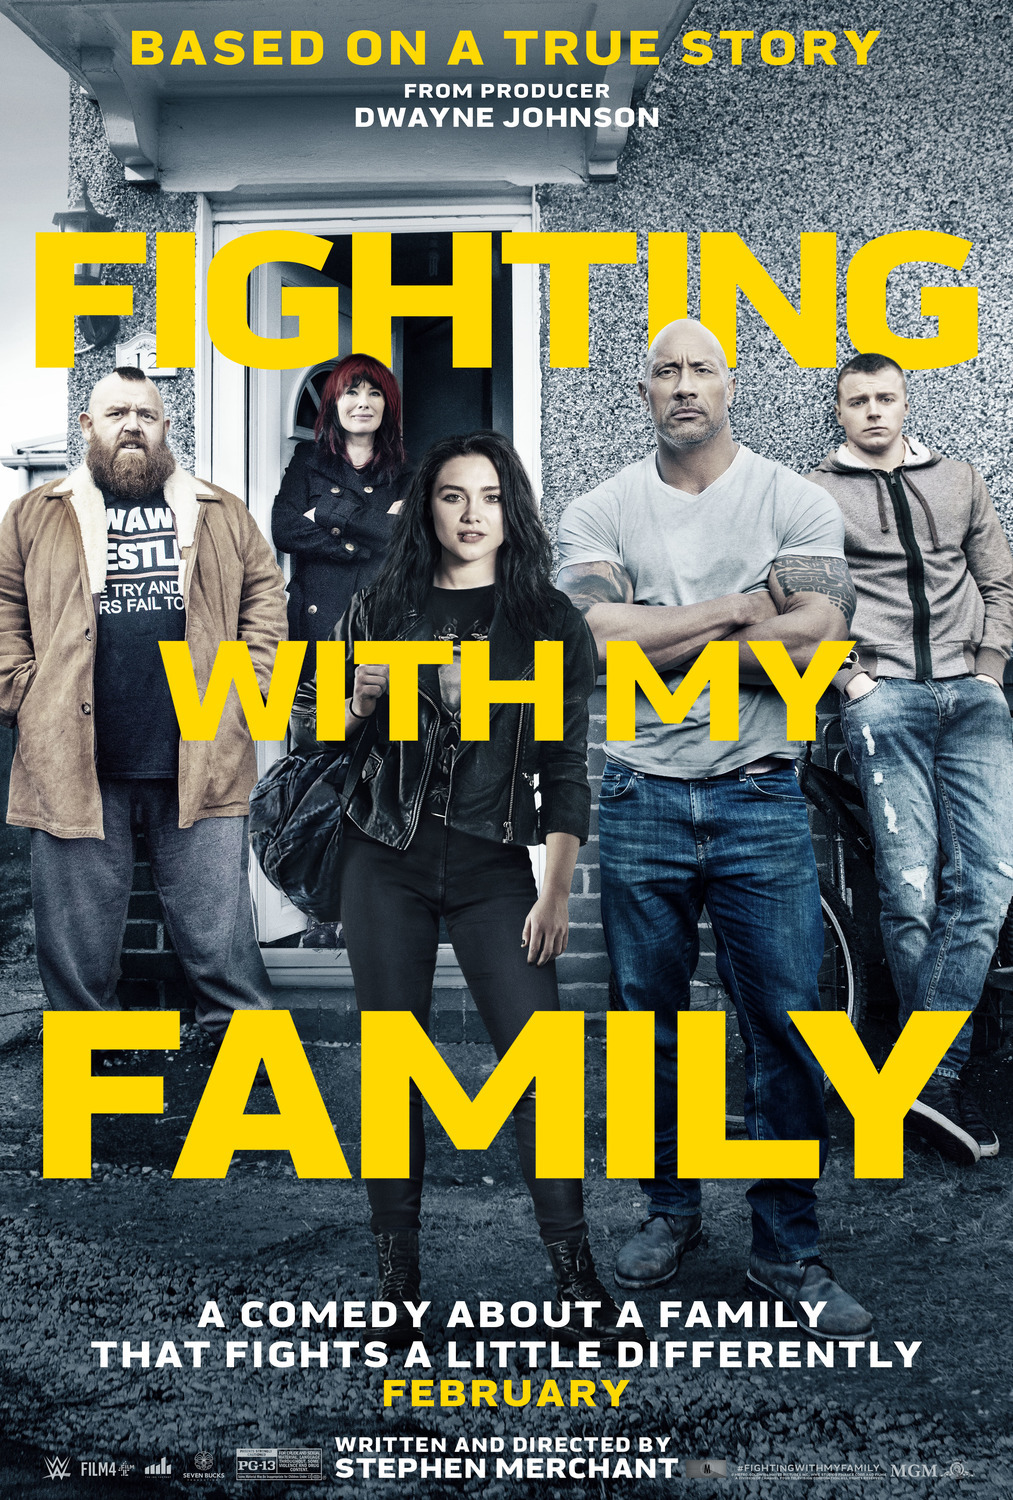 Fighting with My Family (2019) - Directed by: Stephen MerchantStarring: Florence Pugh, Jack Lowden, Nick Frost, Lena Headey, Dwayne Johnson, Stephen MerchantRated: PG-13 for Crude and Sexual Material, Language Throughout, Some Violence and Drug ContentRunning Time: 1 h 48 mTMM Score: 3.5 stars out of 5STRENGTHS: Writing, Acting, Story, ThemesWEAKNESSES: Follows Sports Movie Cliches